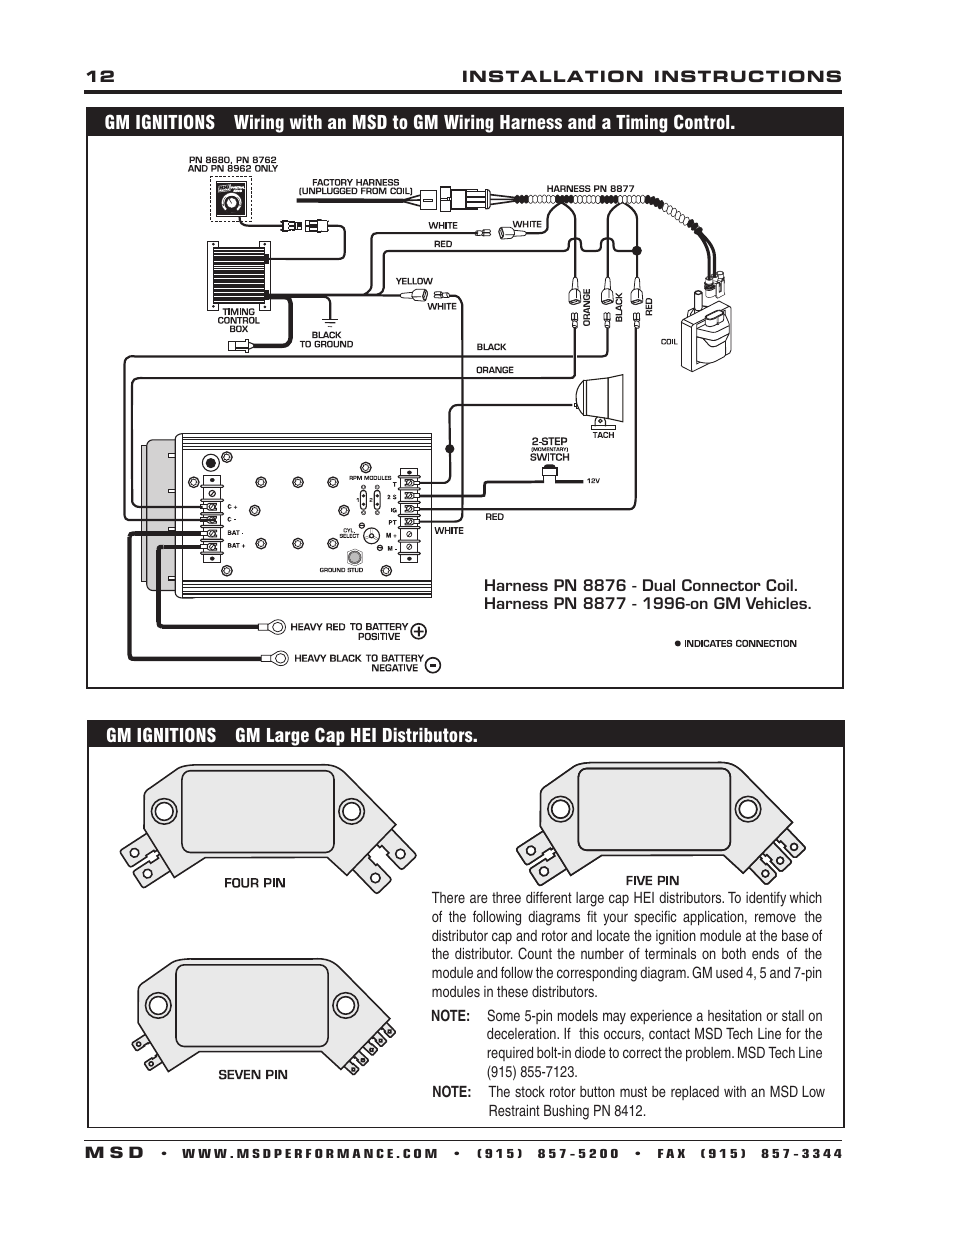 msd-7222-7al-2-ignition-control-installation-page12 Gm Wiring Diagram Coil In Cap on hei coil diagram, gm starter diagram, passlock ii diagram, gm hei ignition module wiring, gm hei wiring schematic, gm points ignition circuit diagram, gm coil testing, gm passkey bypass diagram, passlock 1 bypass diagram, coil pack diagram, gm distributor diagram, 2002 gm passlock diagram, gm coil connector, gm goodwrench vehicle security system diagram, gm coil pack wiring,